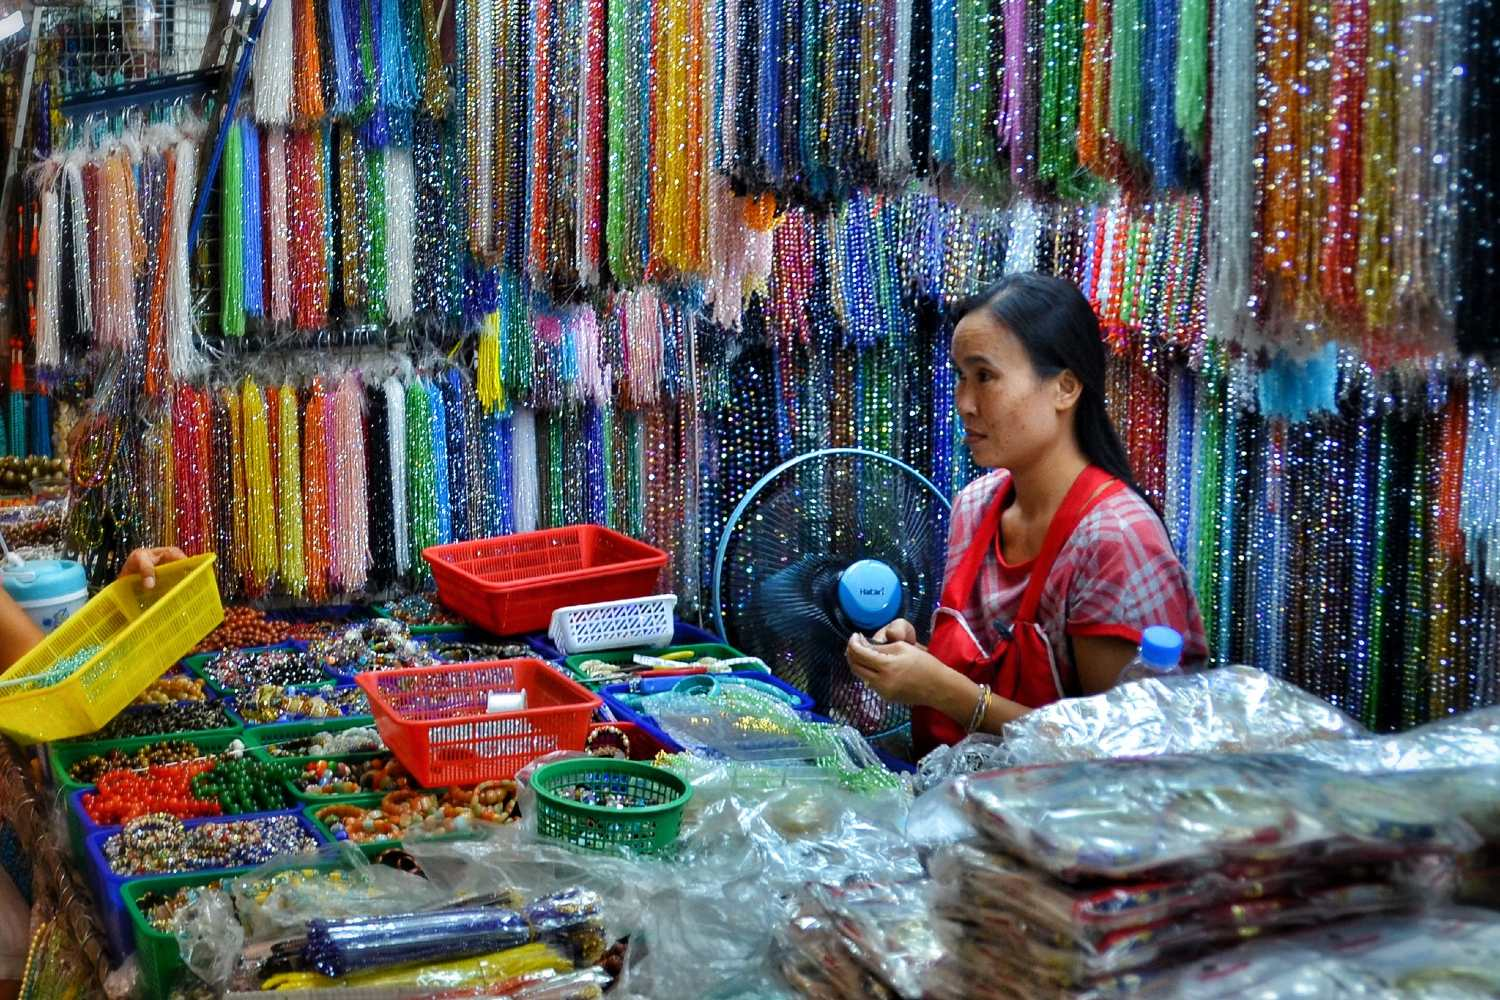 Chinatown, Phahurat Market (Little India) Seller with coloured bead necklaces.